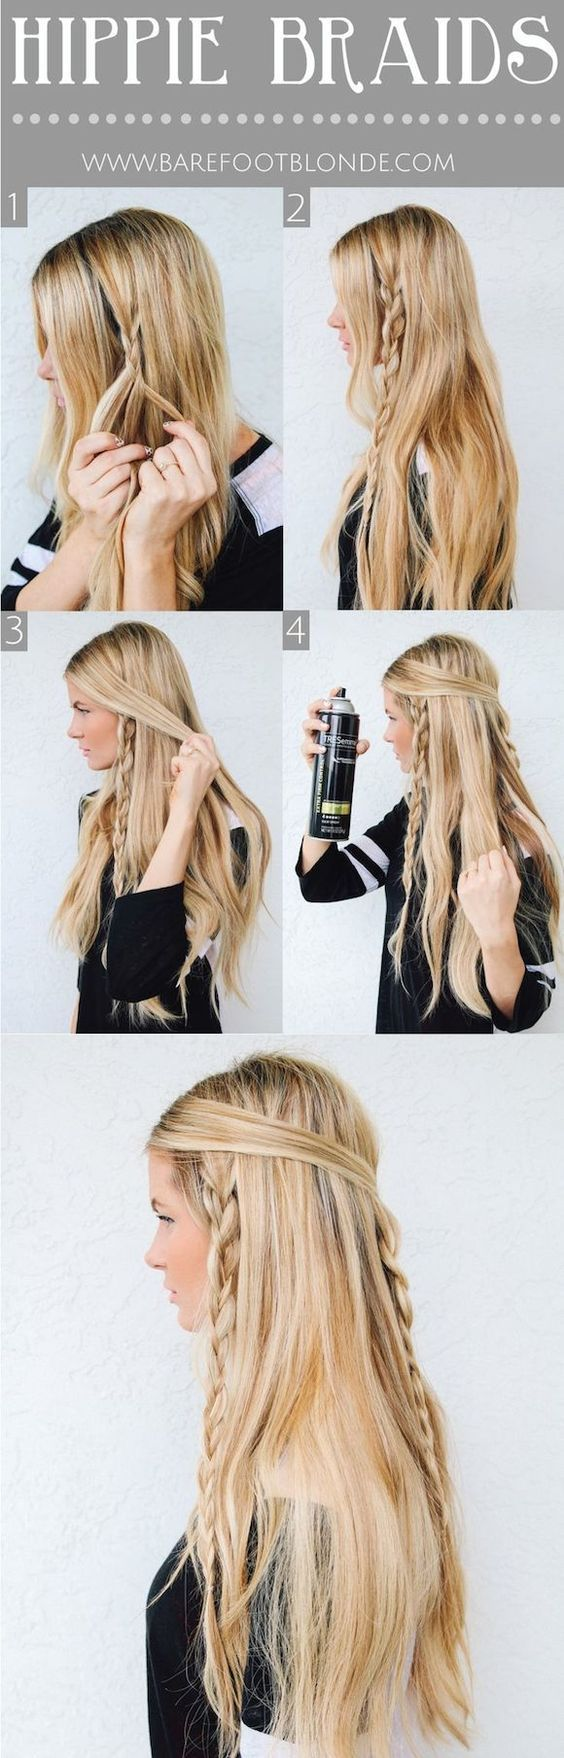 Easy Everyday Hairstyles For Medium Length Hair - StyleCraze.  Nothing beats the versatility of medium length hair. It is the ideal length to try out all the hairstyles. Here are some easy hairstyles for medium. affiliate link